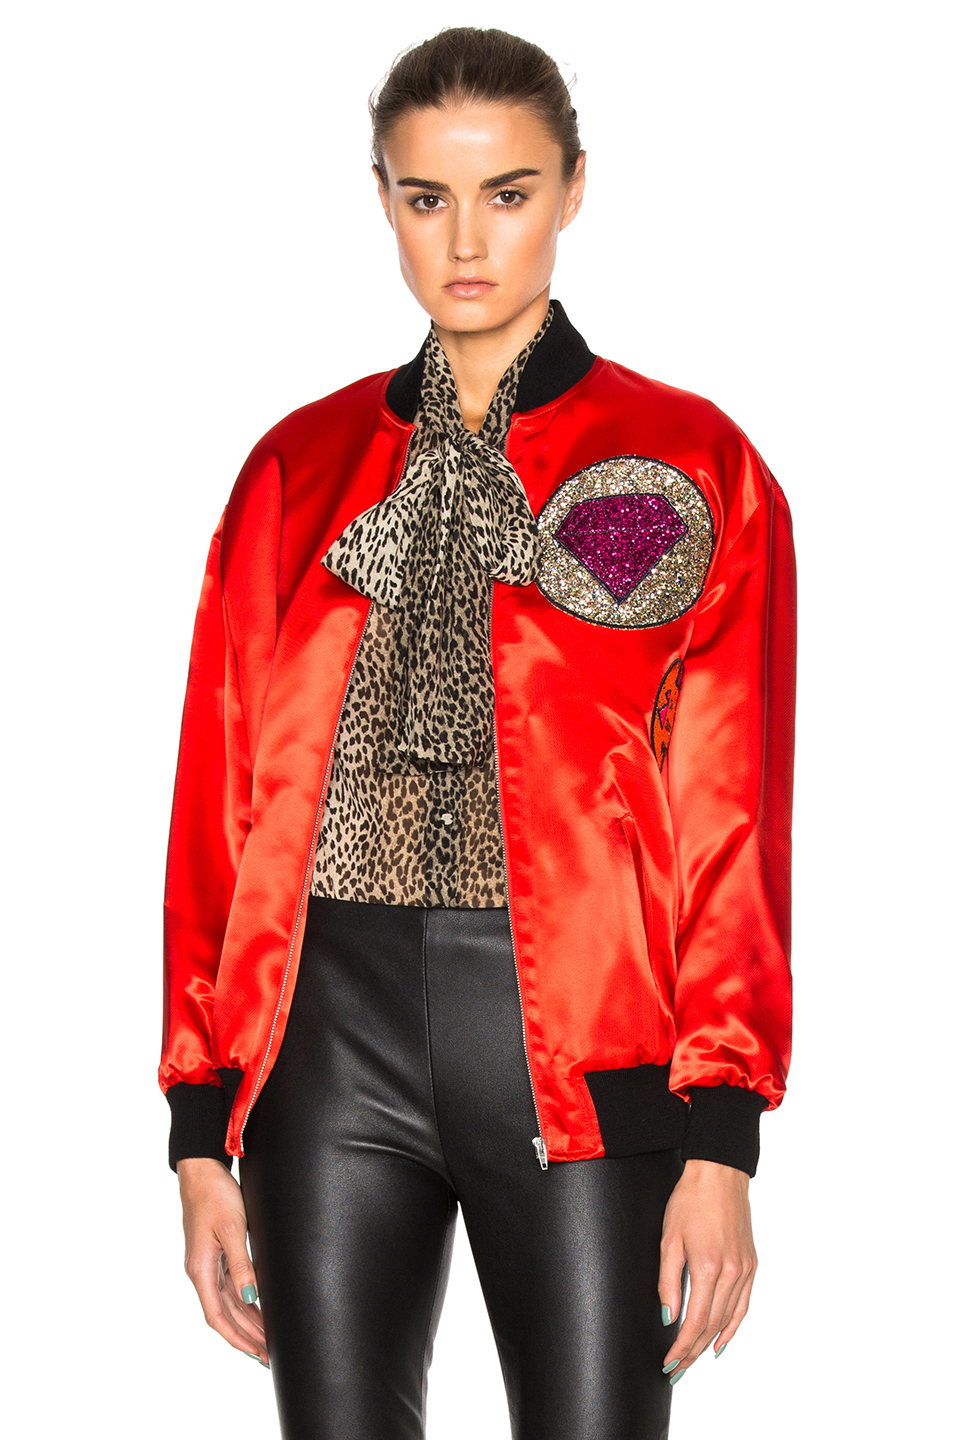 Saint Laurent Oversize Multi Patch Teddy Jacket in Red